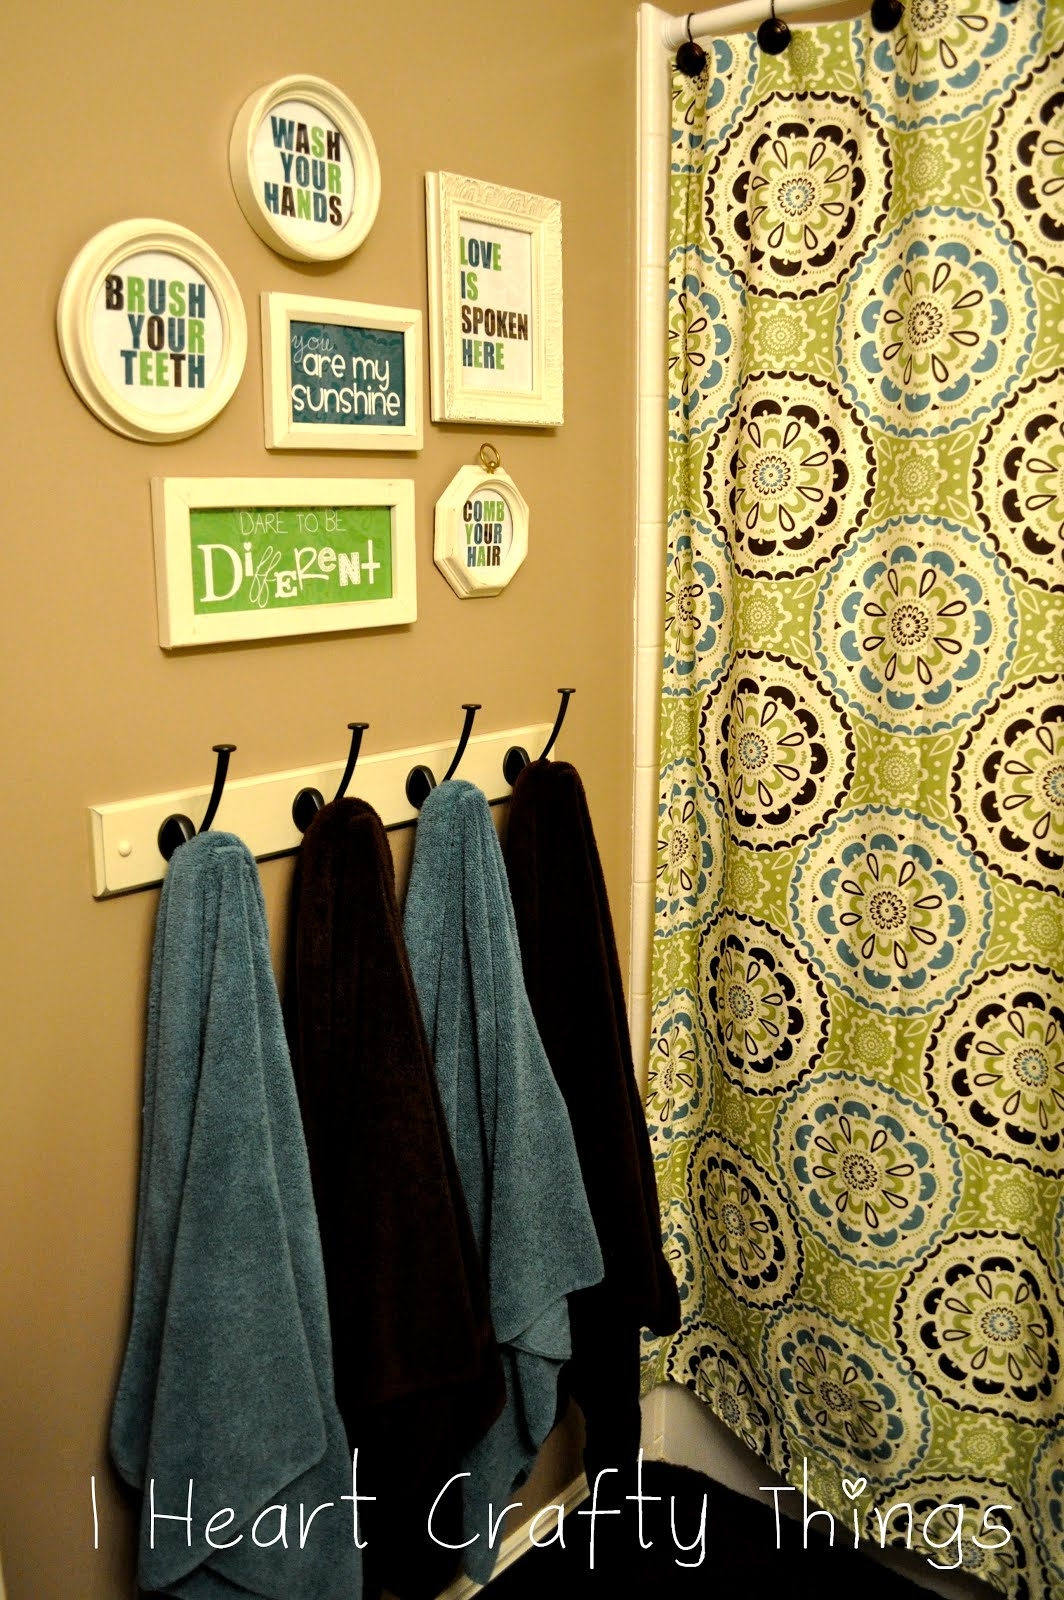 Bathroom Printables | I Heart Crafty Things